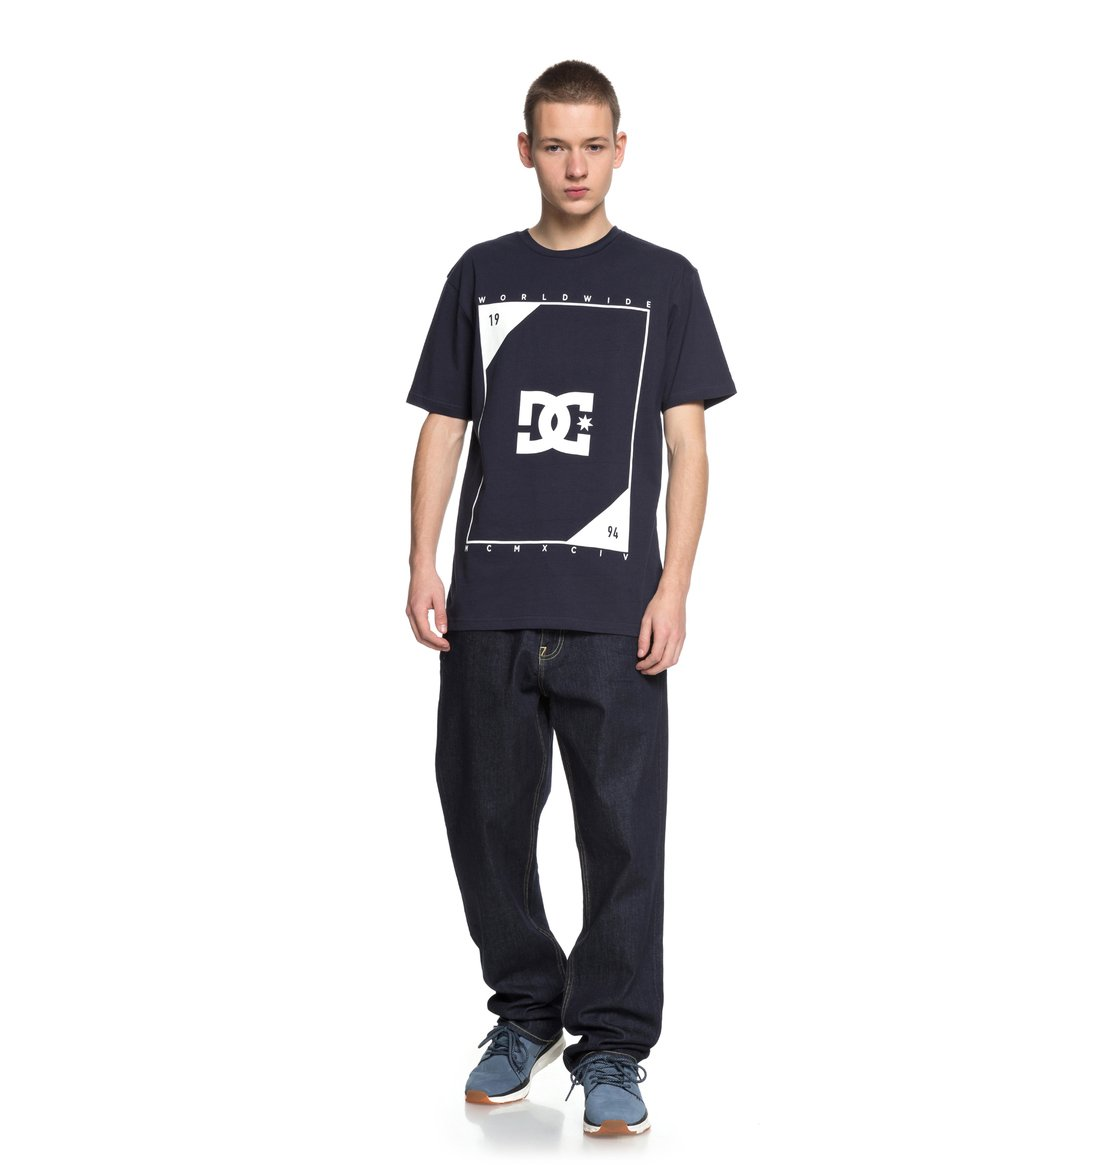 dc shoes Middle Theory - Maglietta da Uomo - Blue - DC Shoes